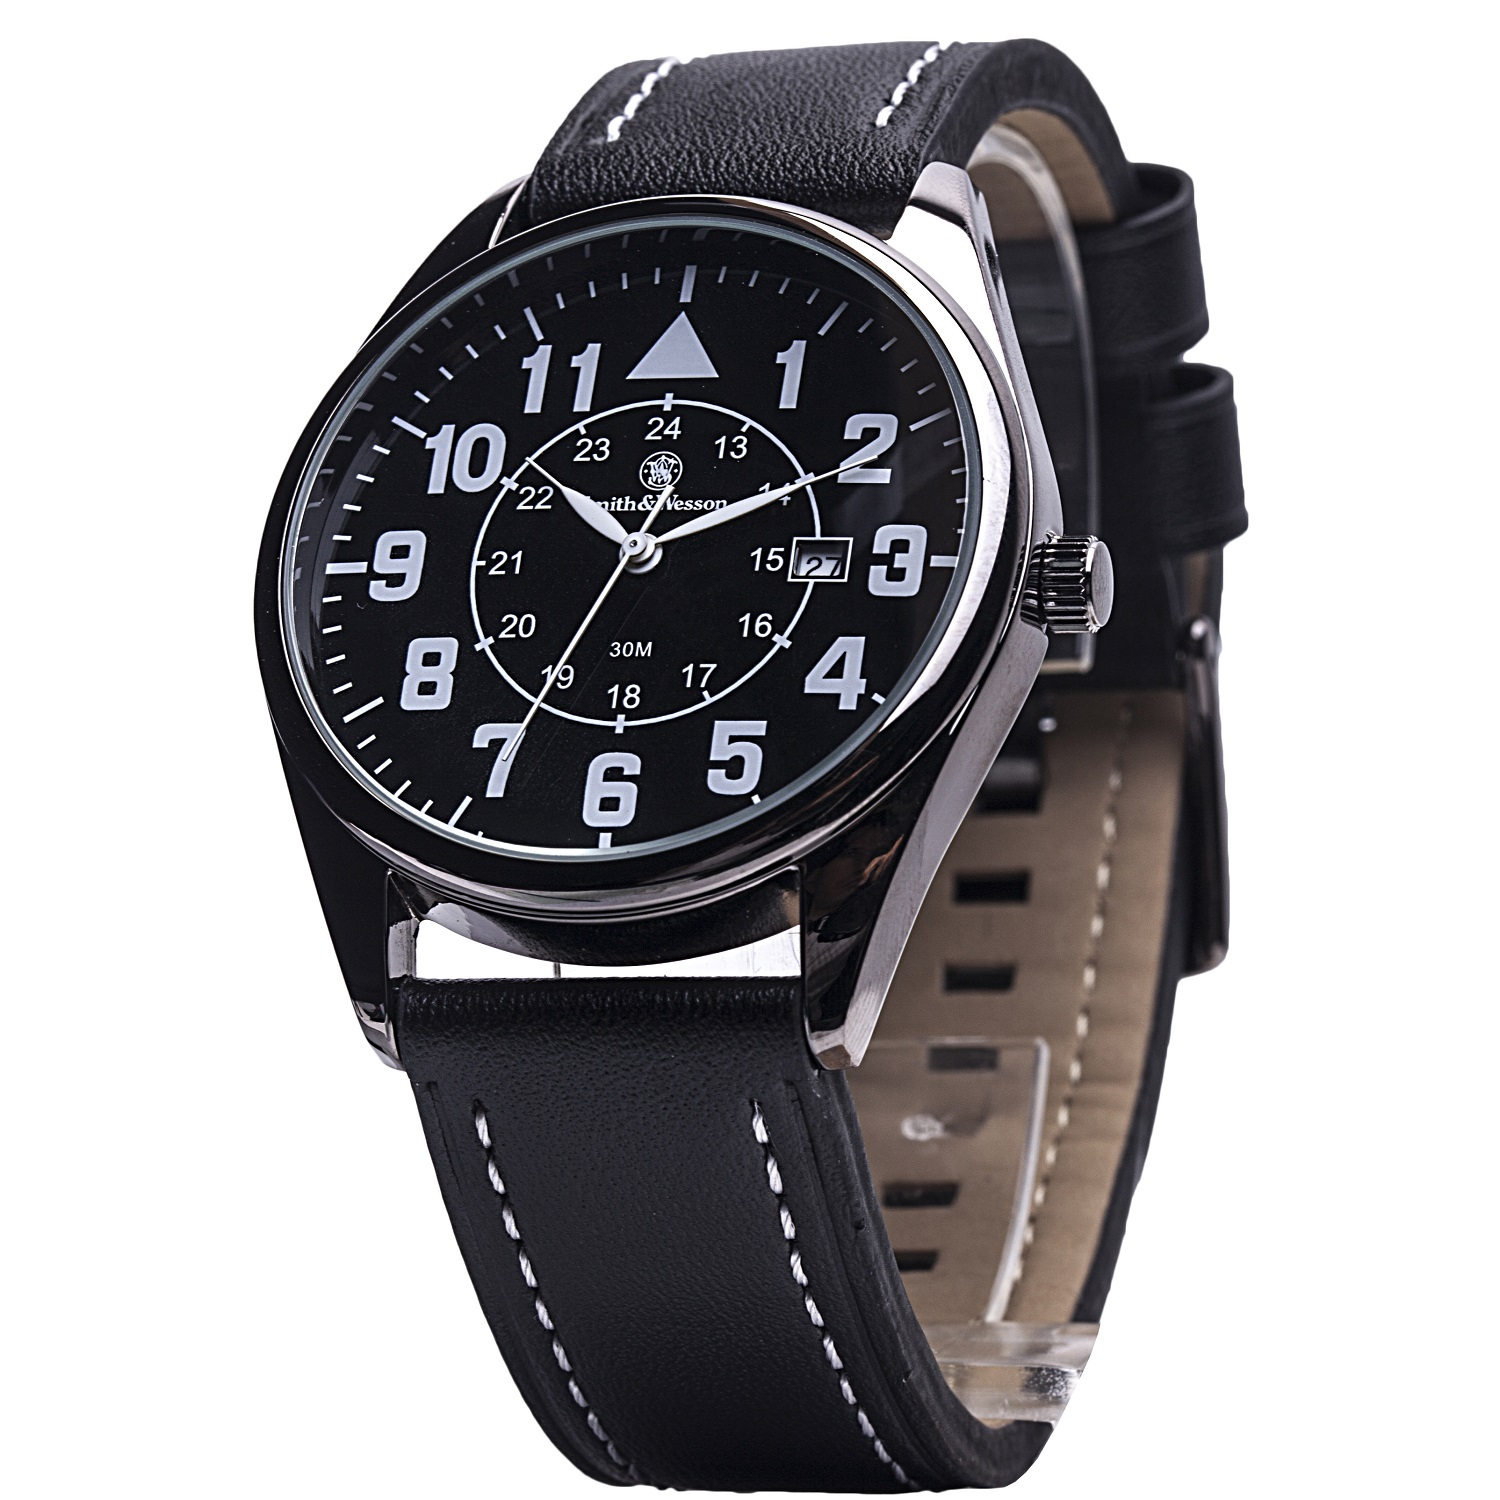 Smith & Wesson Civilian Watch with Black Leather Strap